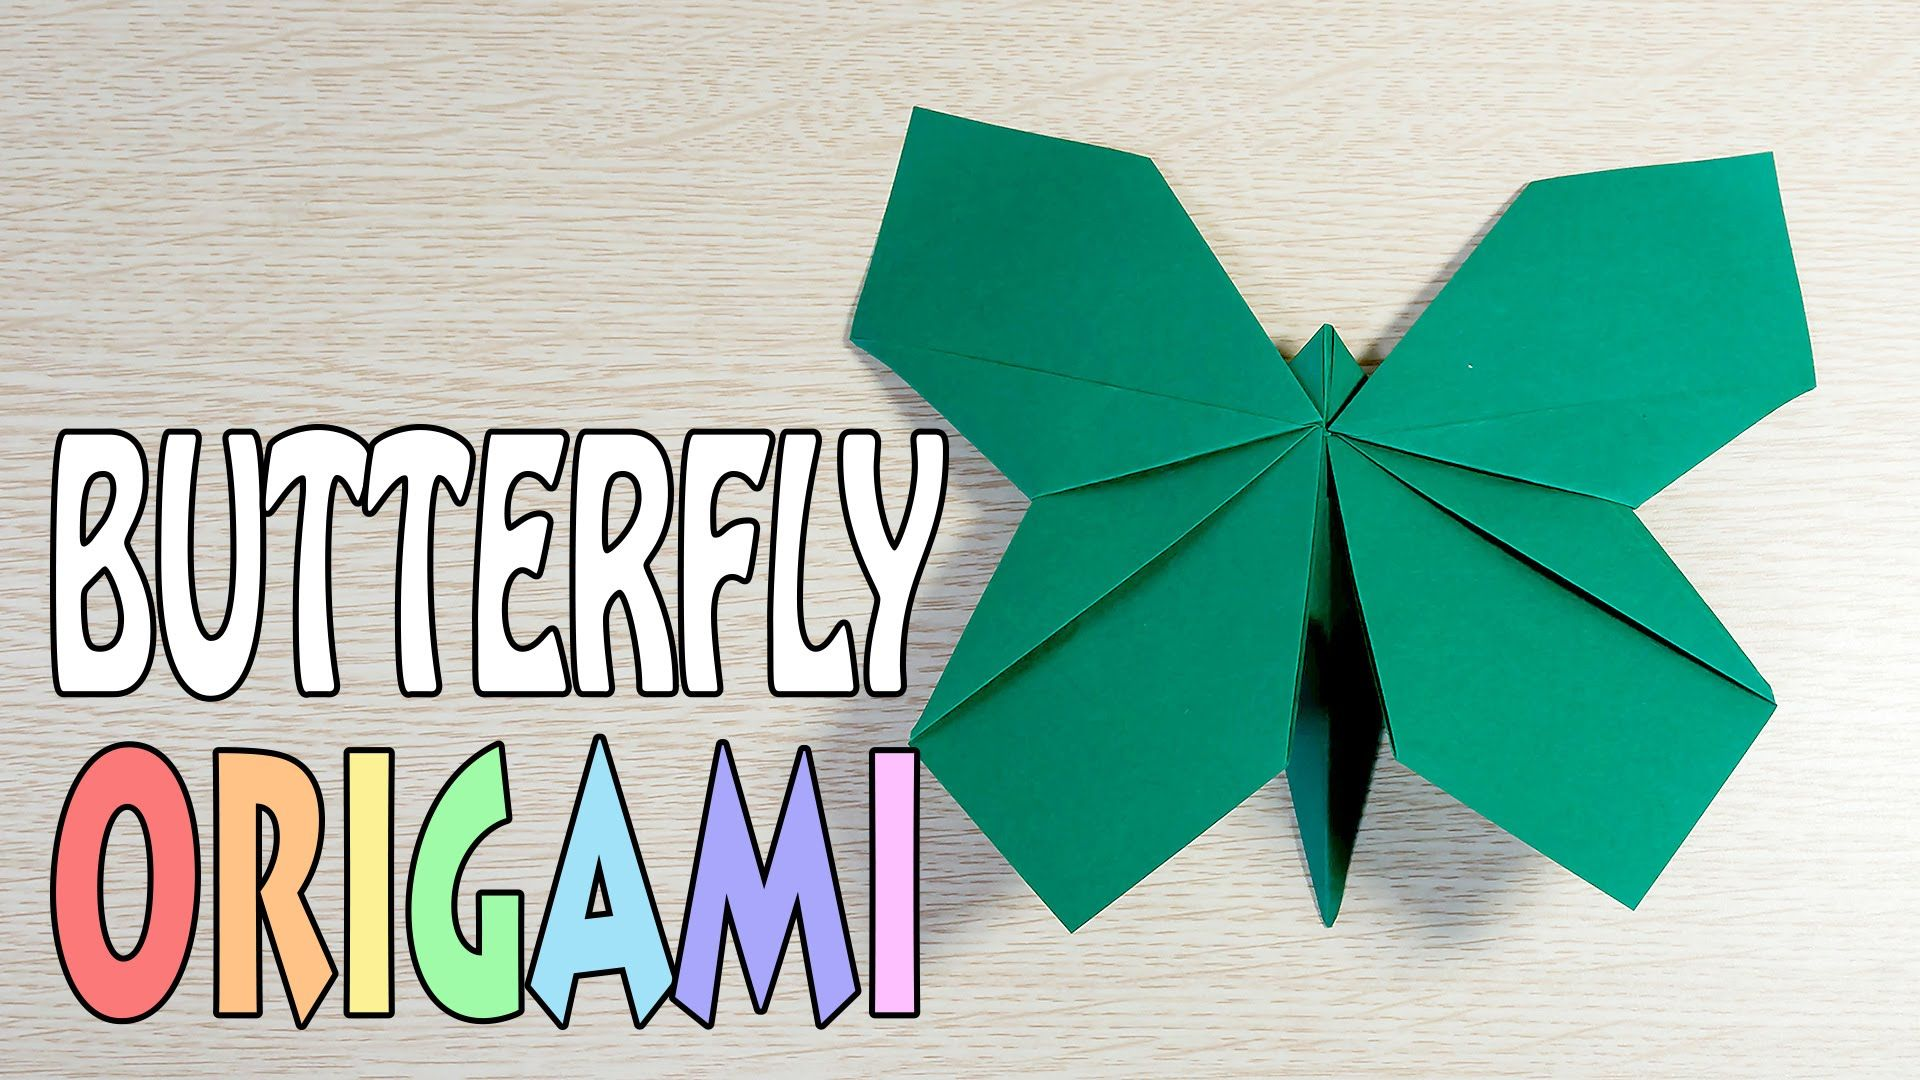 origami butterfly a4 paper diy tutorial